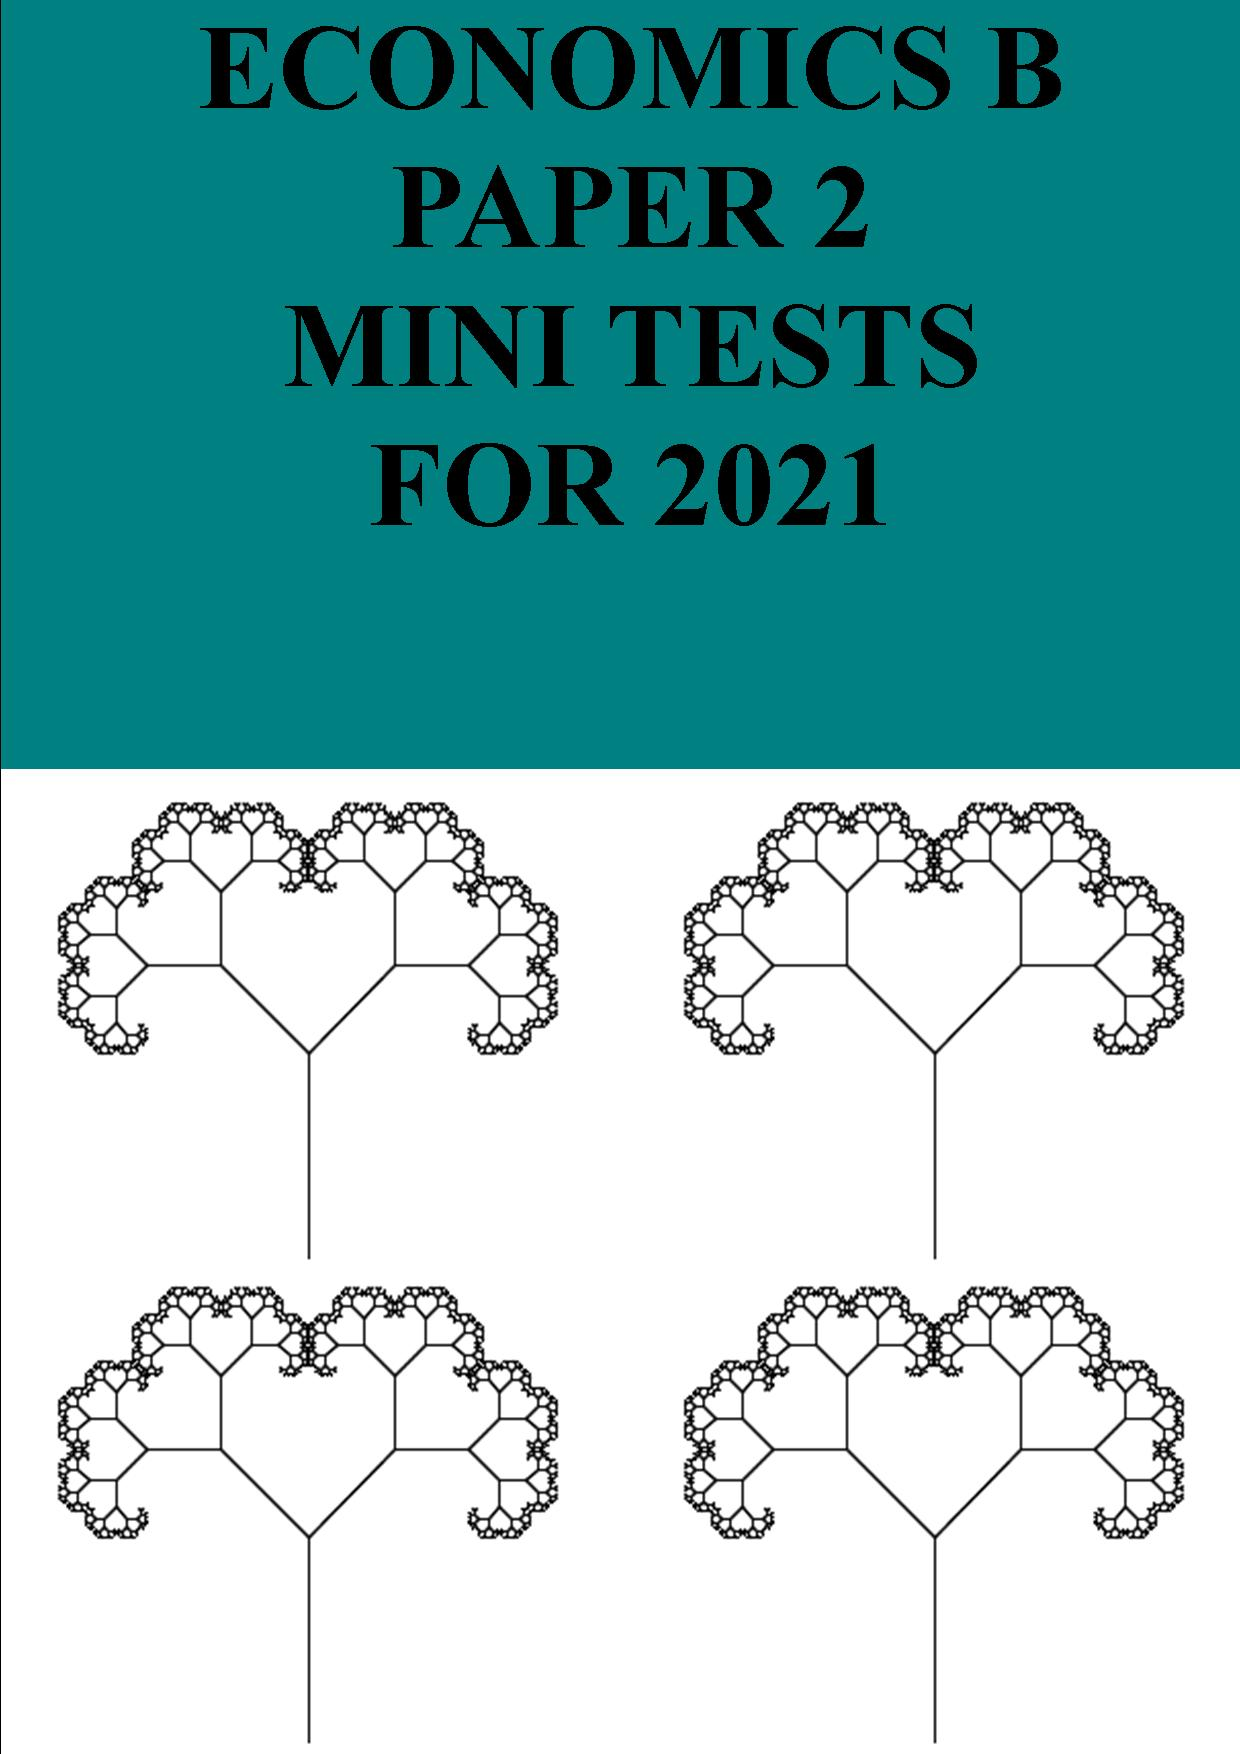 Paper 2 mini tests for 2021